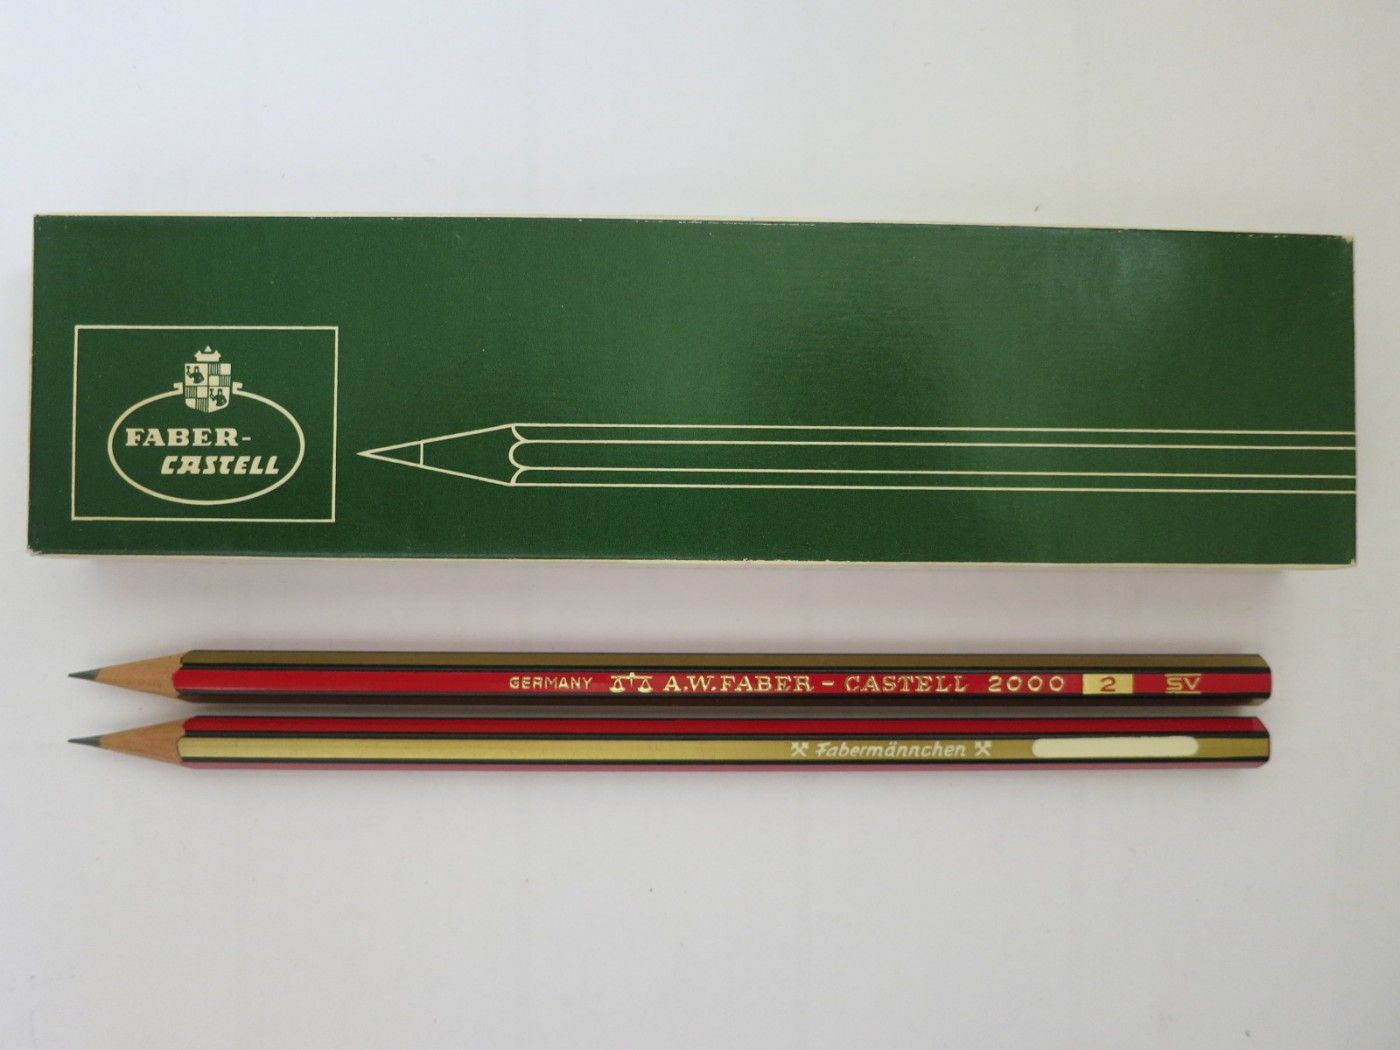 Vintage A W Faber Castell 2000 Pencil 2 Fabermannchen Made In Germany Vintage Pencils Pencils Artist Supplies Artist Supplies Faber Castell Led Pencils